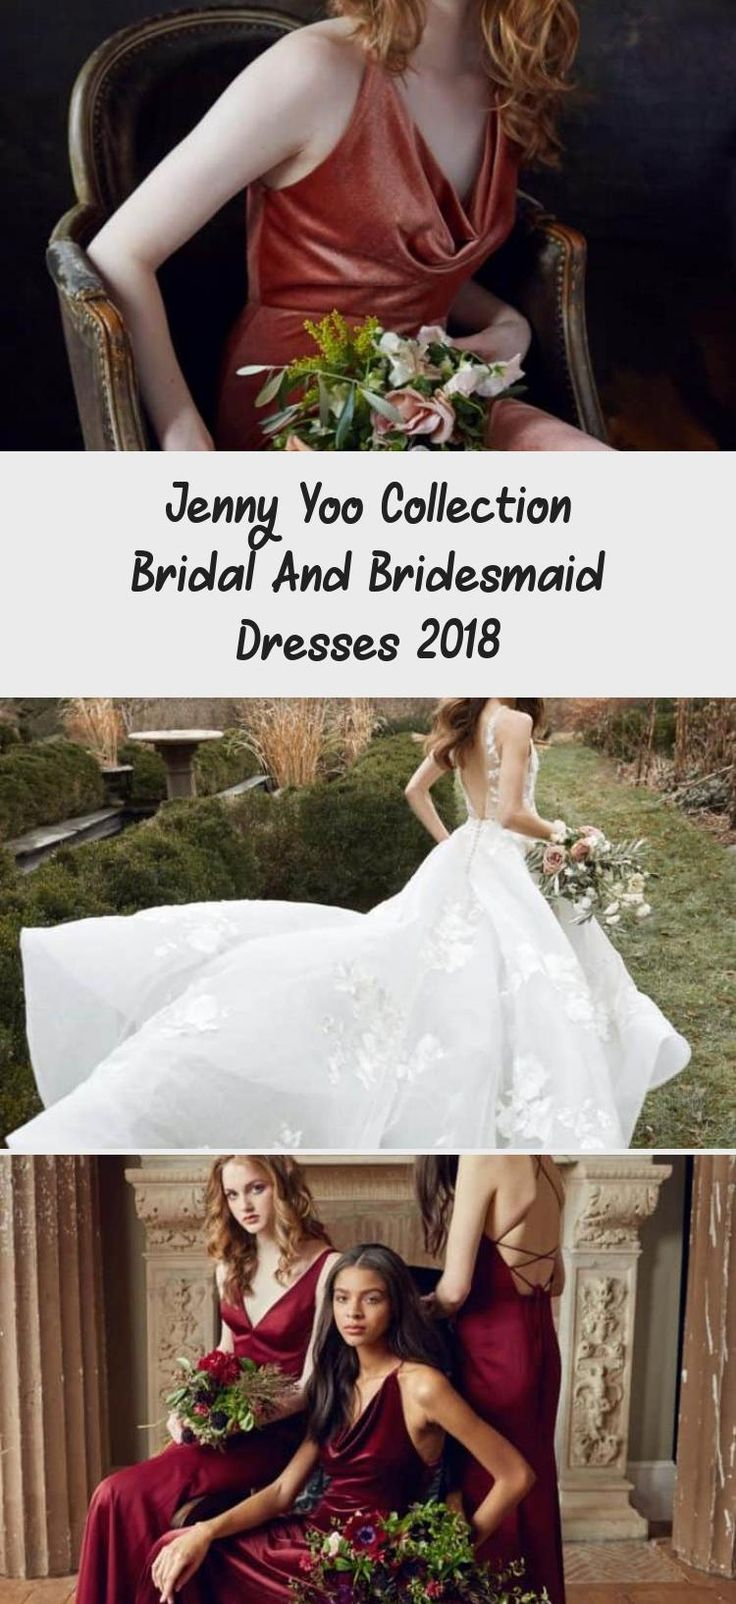 Emerald green satin Jenny Yoo bridesmaid dresses. Winter wedding, dark green bridesmaid dresses, fall wedding, elegant bridesmaids #BridesmaidDressesMuslim #BridesmaidDressesBoho #UniqueBridesmaidDresses #GreenBridesmaidDresses #BridesmaidDressesMint